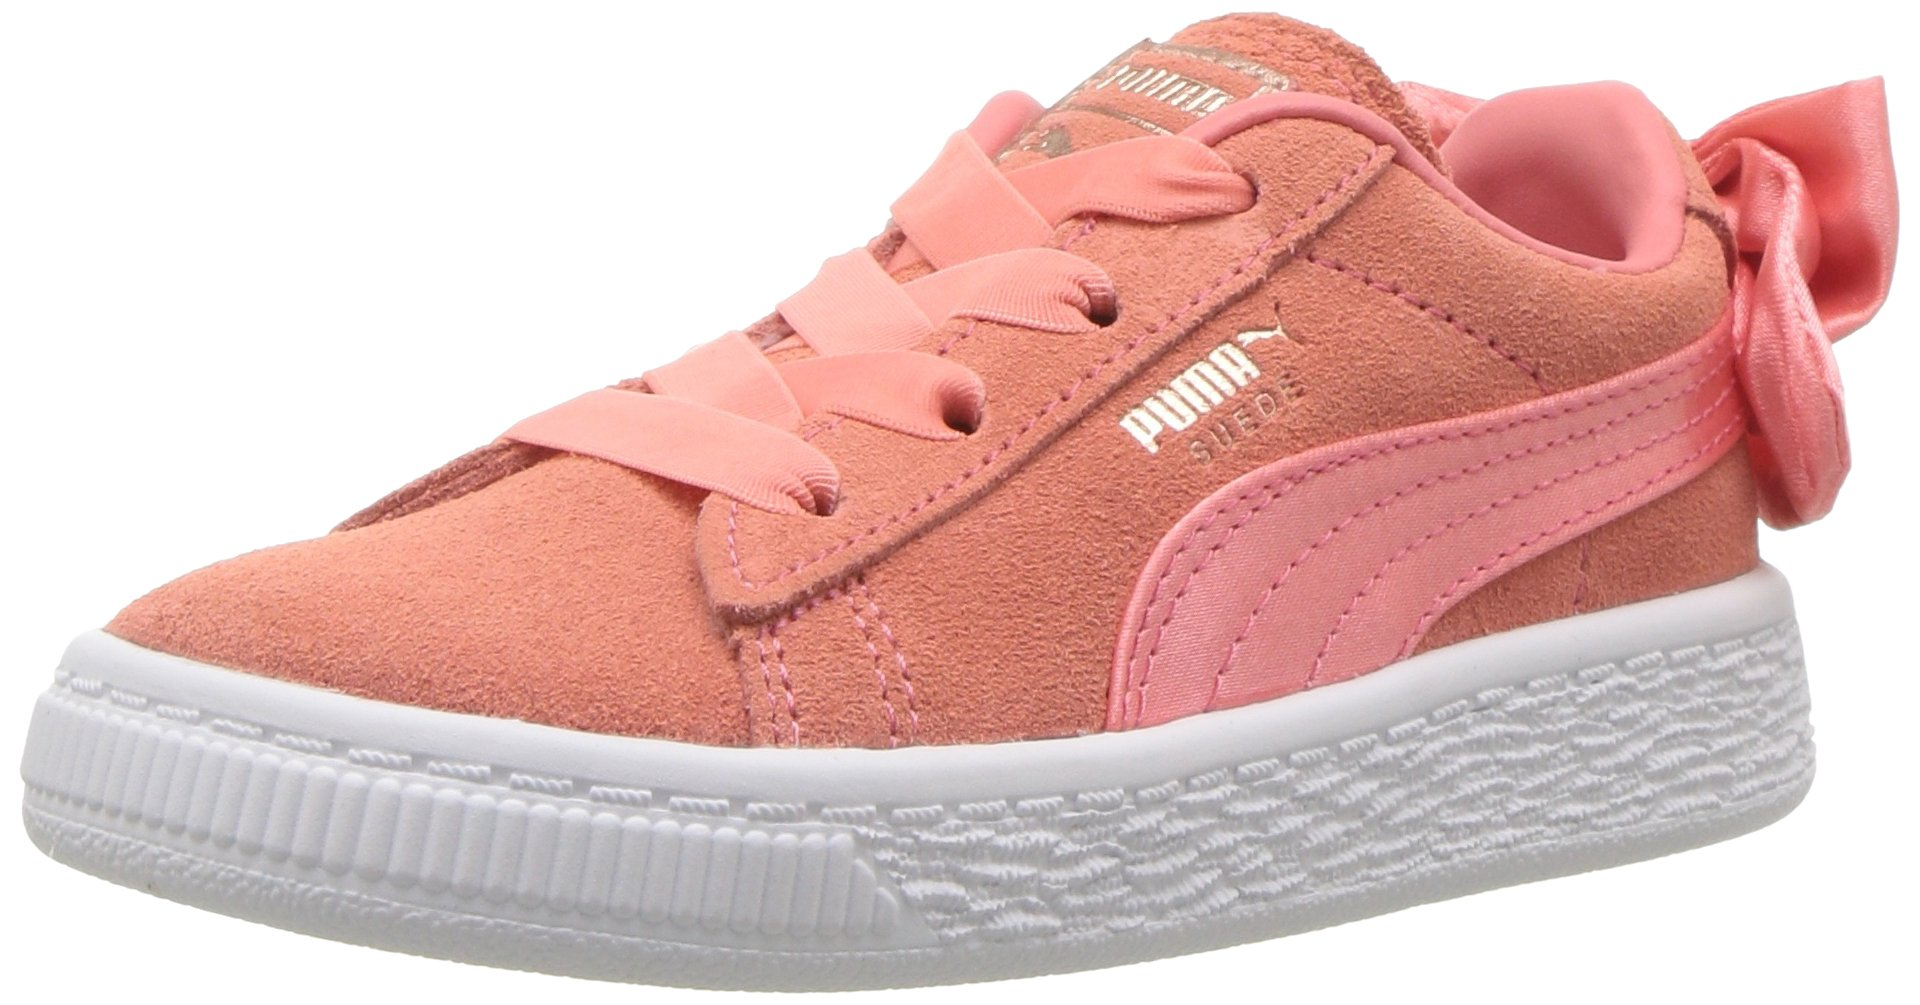 Galleon - PUMA Baby Suede Bow Slip On Sneaker a5c1b4070